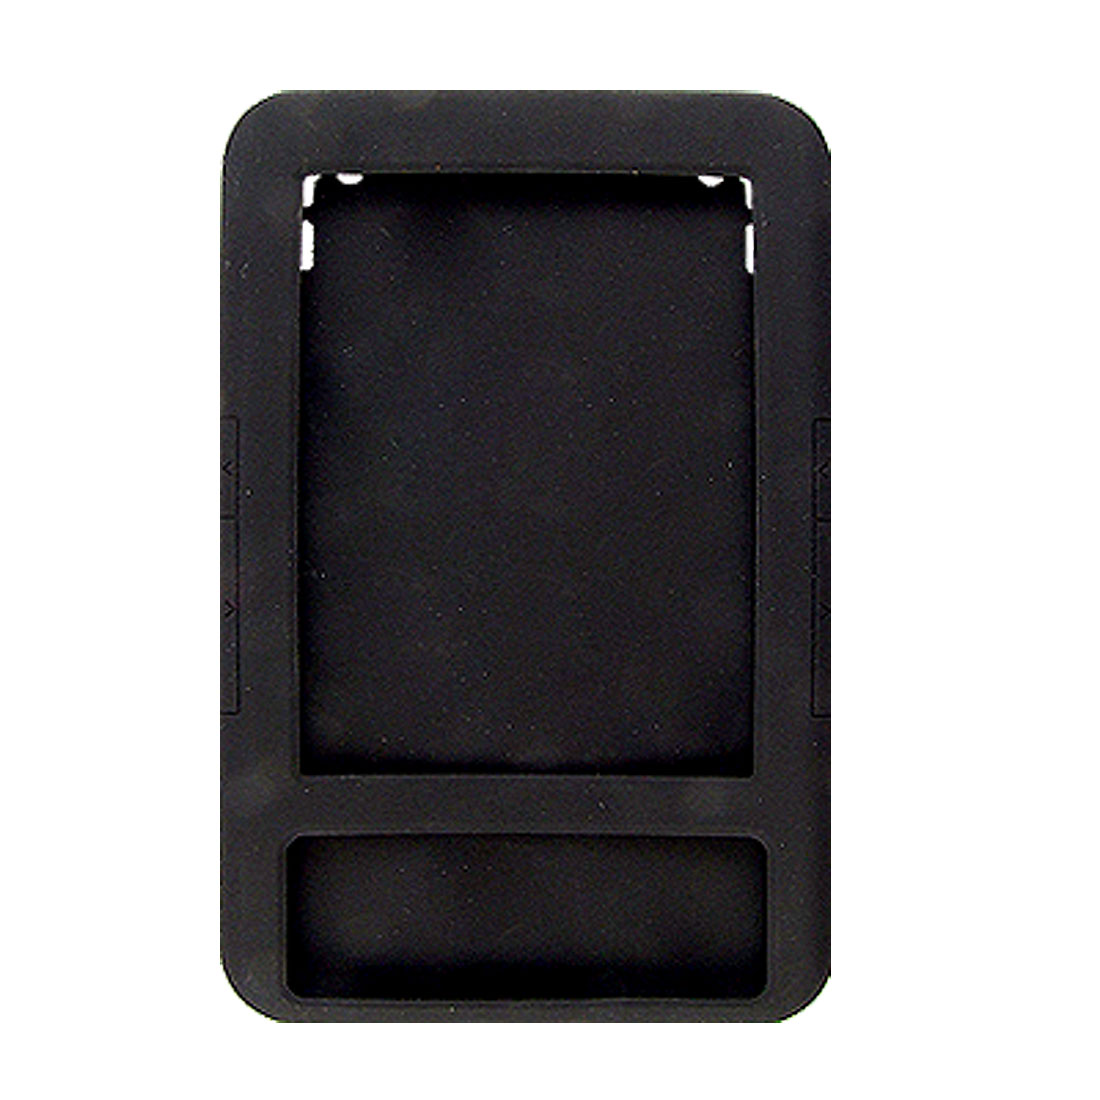 Reading E-Book Black Silicone Case Protector for Amazon Kindle 3